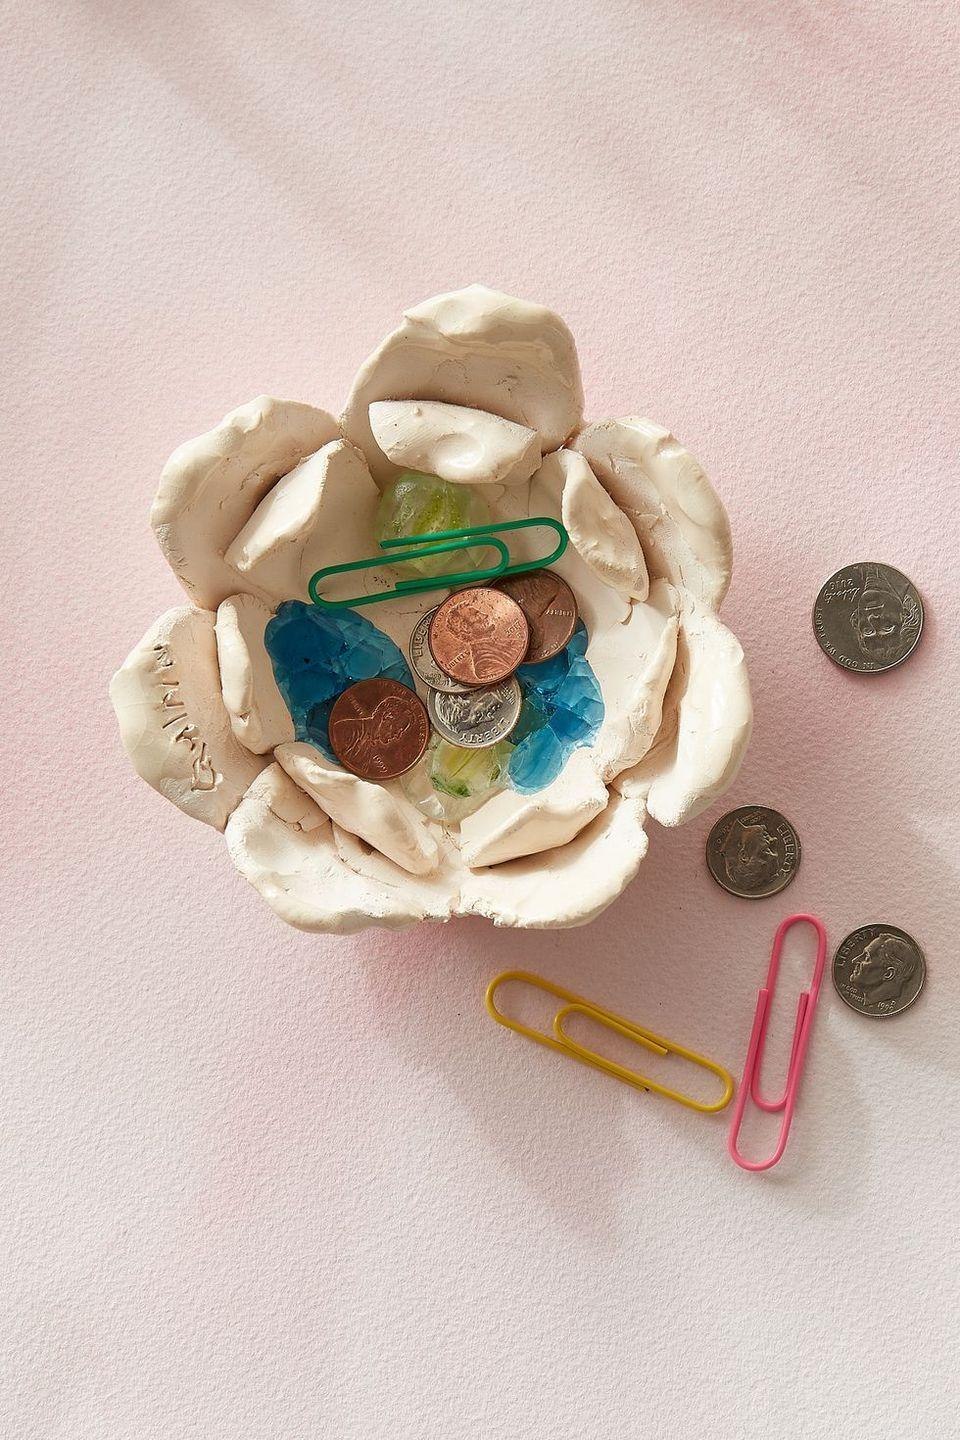 """<p> Kids will have so much fun crafting this catchall from <a href=""""https://www.amazon.com/Aestd-ST-Modeling-Non-Toxic-Non-Stick-Sculpting/dp/B08QZ69GJM/?tag=syn-yahoo-20&ascsubtag=%5Bartid%7C10070.g.2308%5Bsrc%7Cyahoo-us"""" rel=""""nofollow noopener"""" target=""""_blank"""" data-ylk=""""slk:oven baked clay"""" class=""""link rapid-noclick-resp"""">oven baked clay</a> — layer a smaller flower over a larger flower, then place a few plastic beads in the bottom and bake until hard. </p>"""